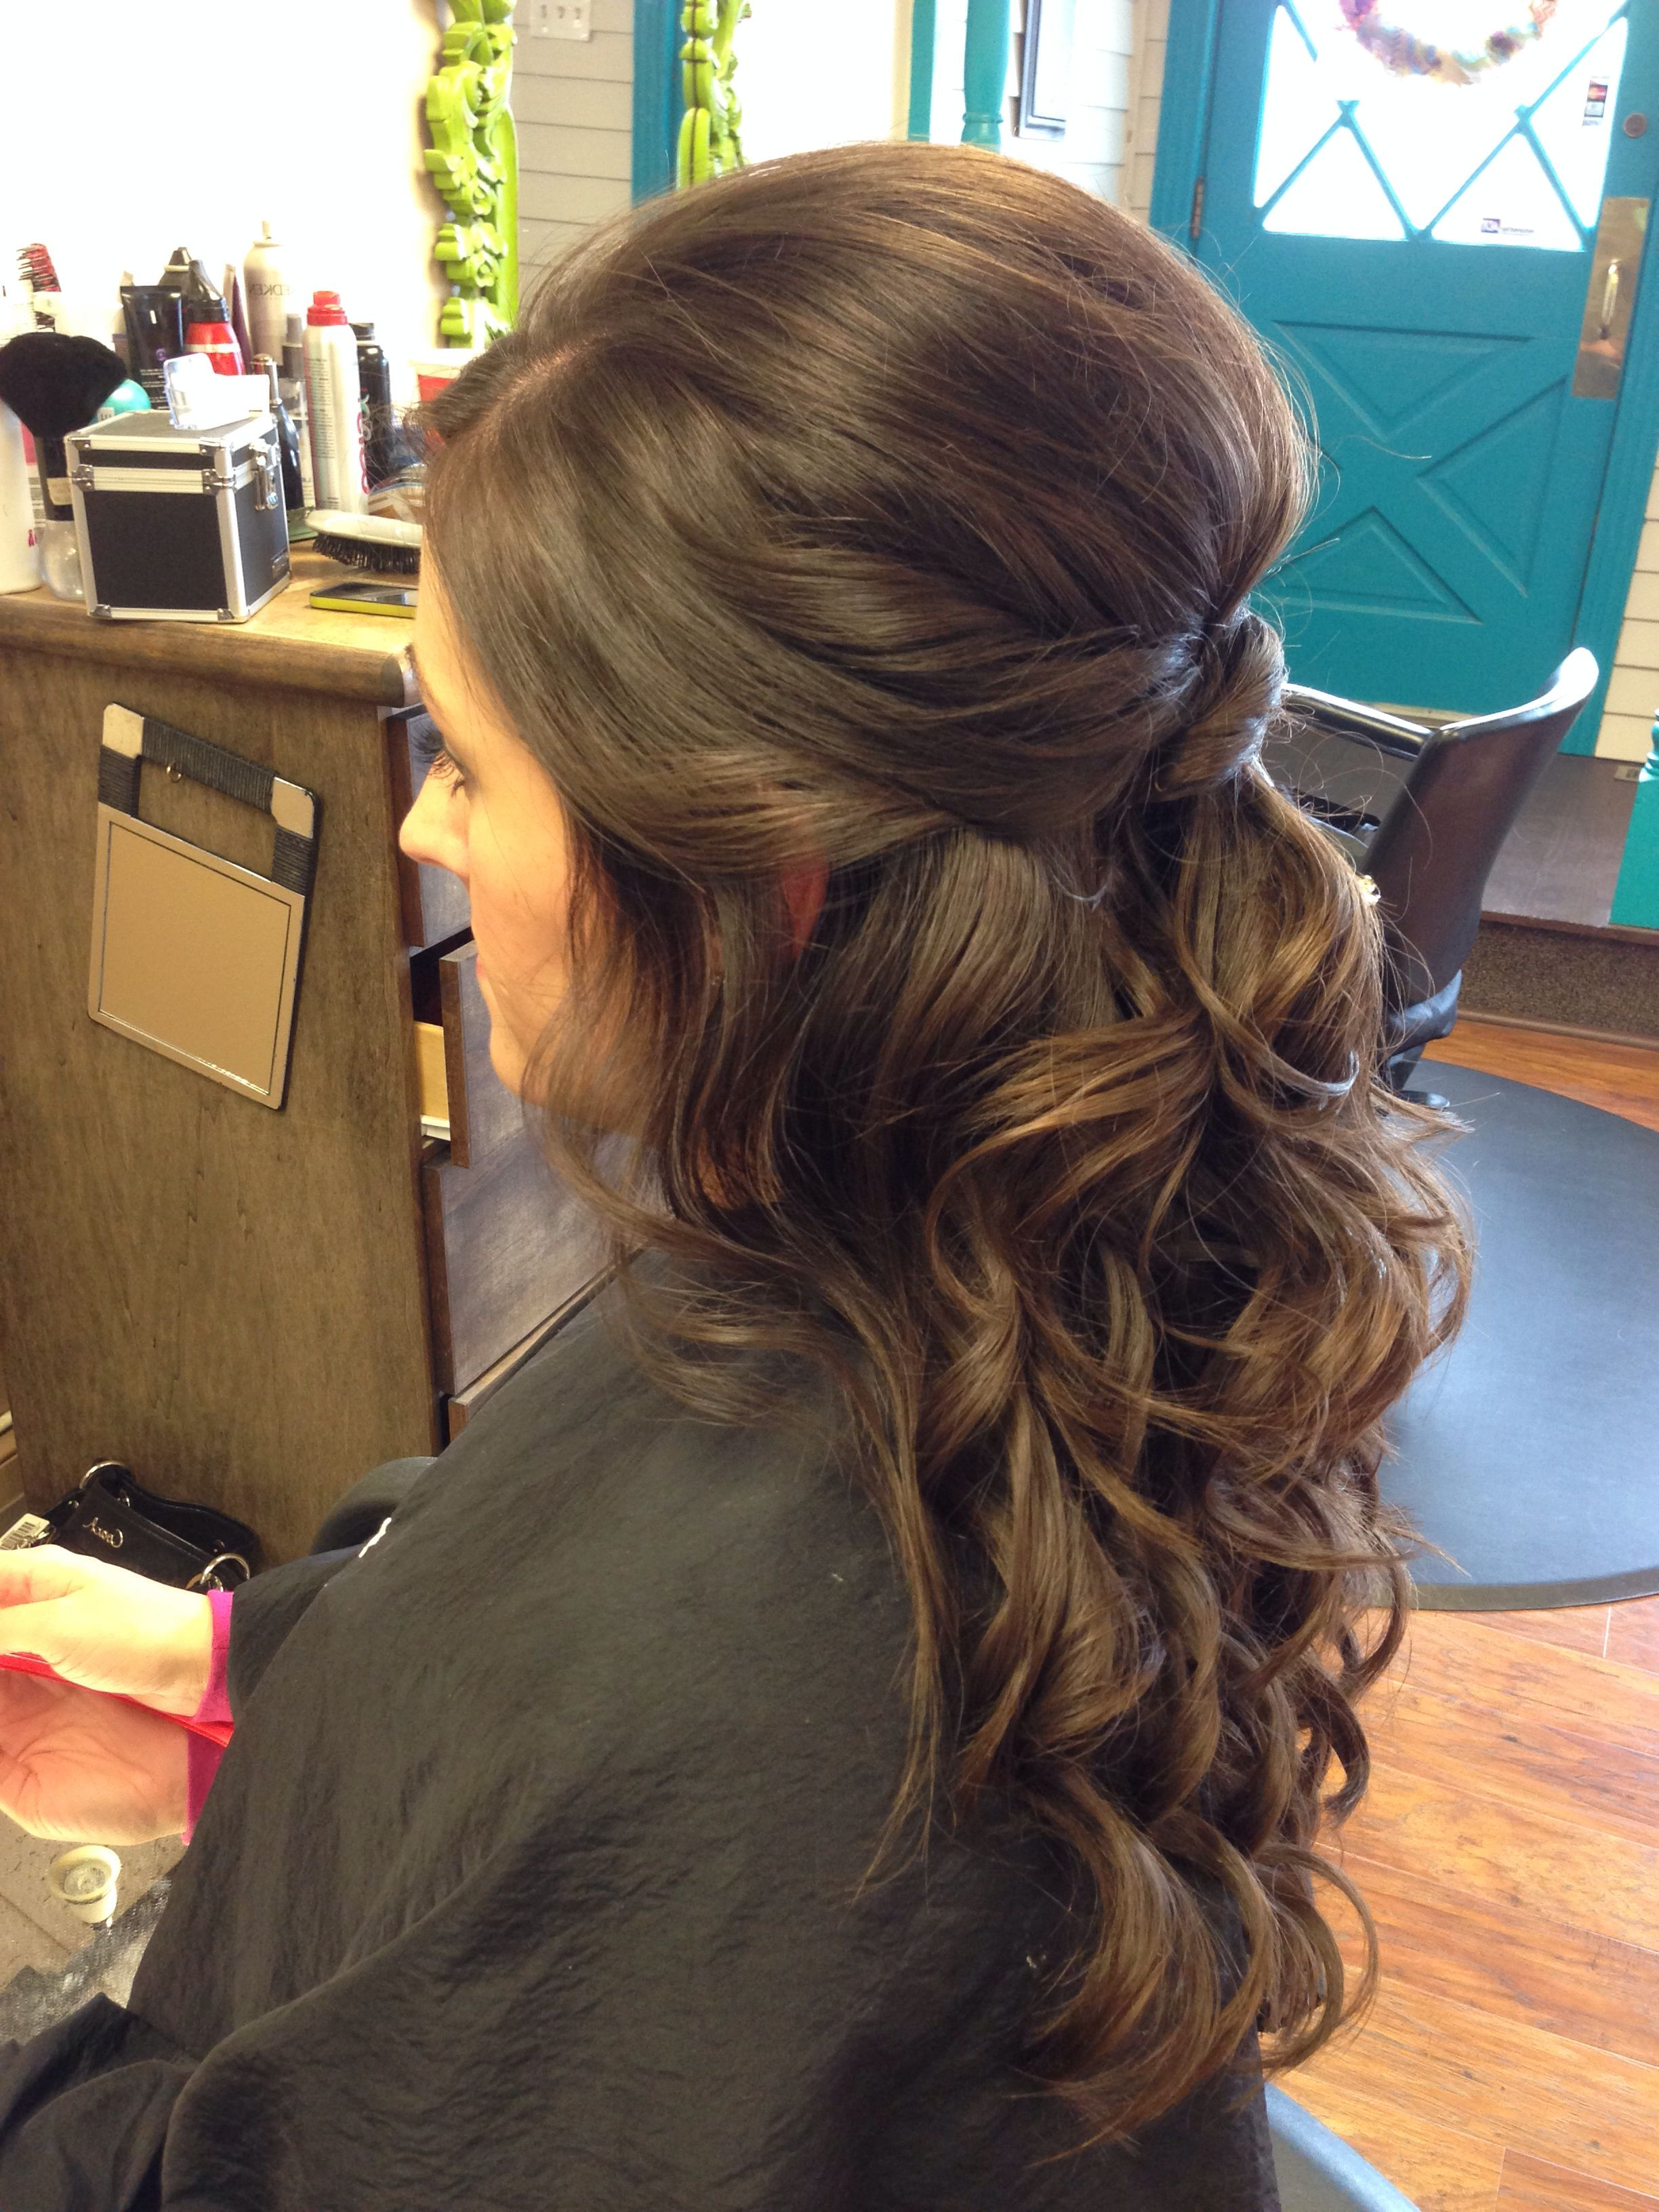 Most Current Twists And Curls In Bridal Half Up Bridal Hairstyles Intended For Wedding Hair – Half Up, Curly, Brunette, Twist #wedding #hair (View 6 of 20)